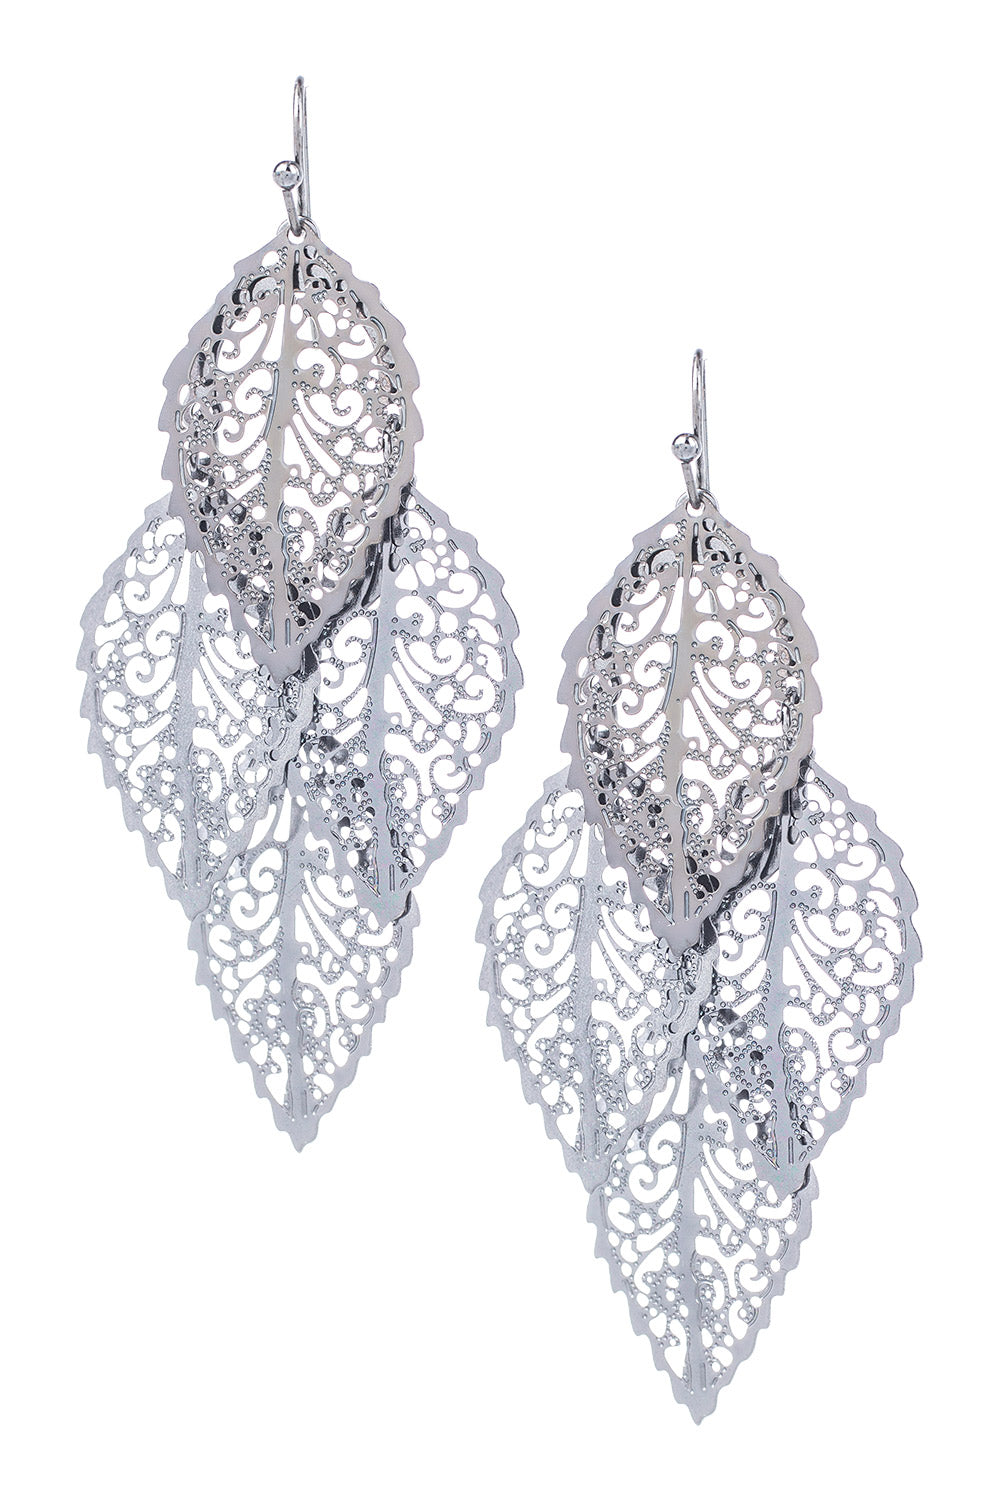 Type 2 Isabella Earrings